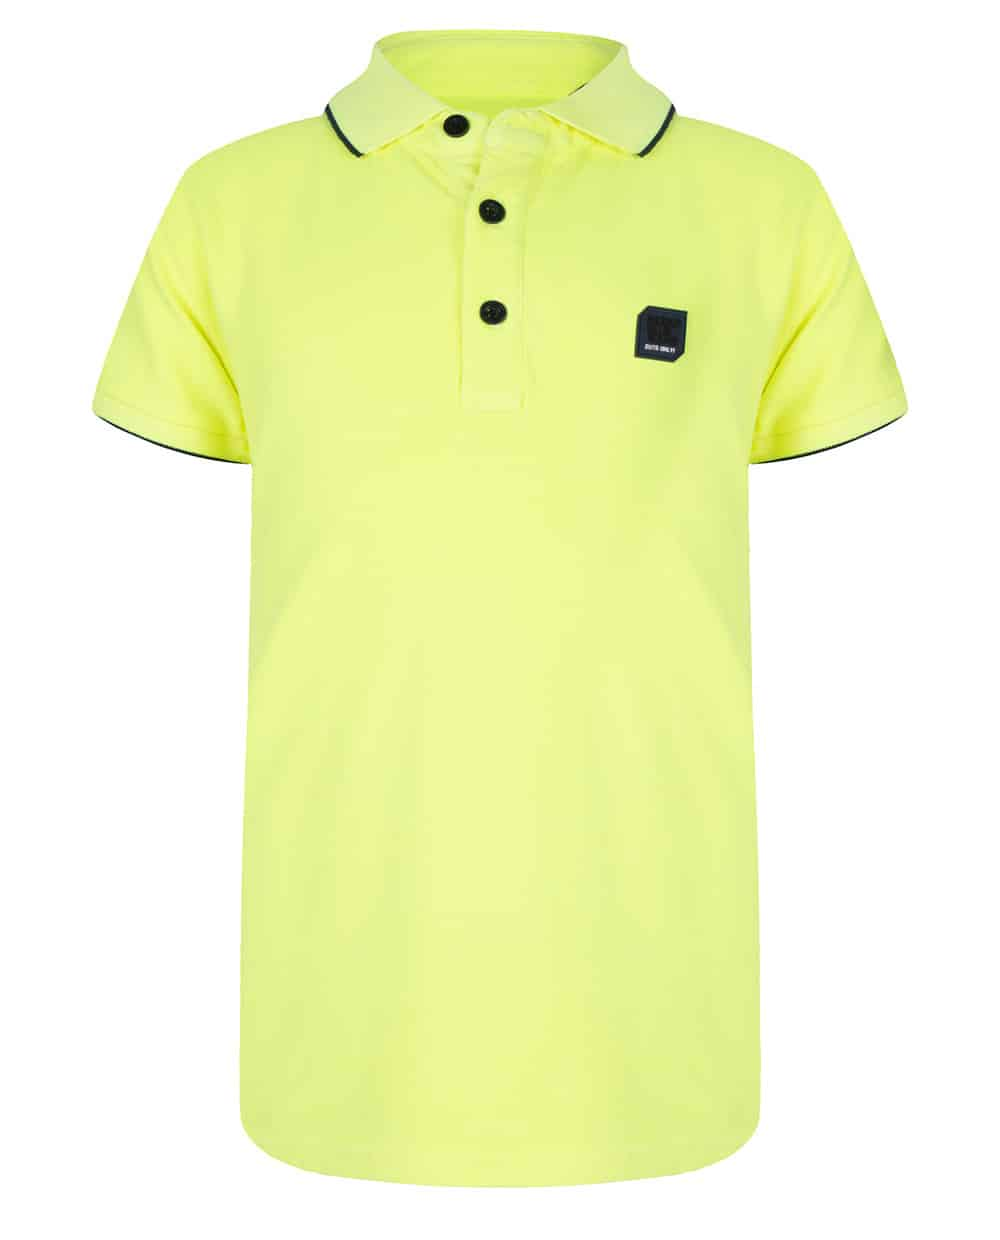 Indian Blue Jeans Jongens Shirts & Tops Indian Blue Jeans gele polo shirt Pique lime IBB20-3688-851 - 1